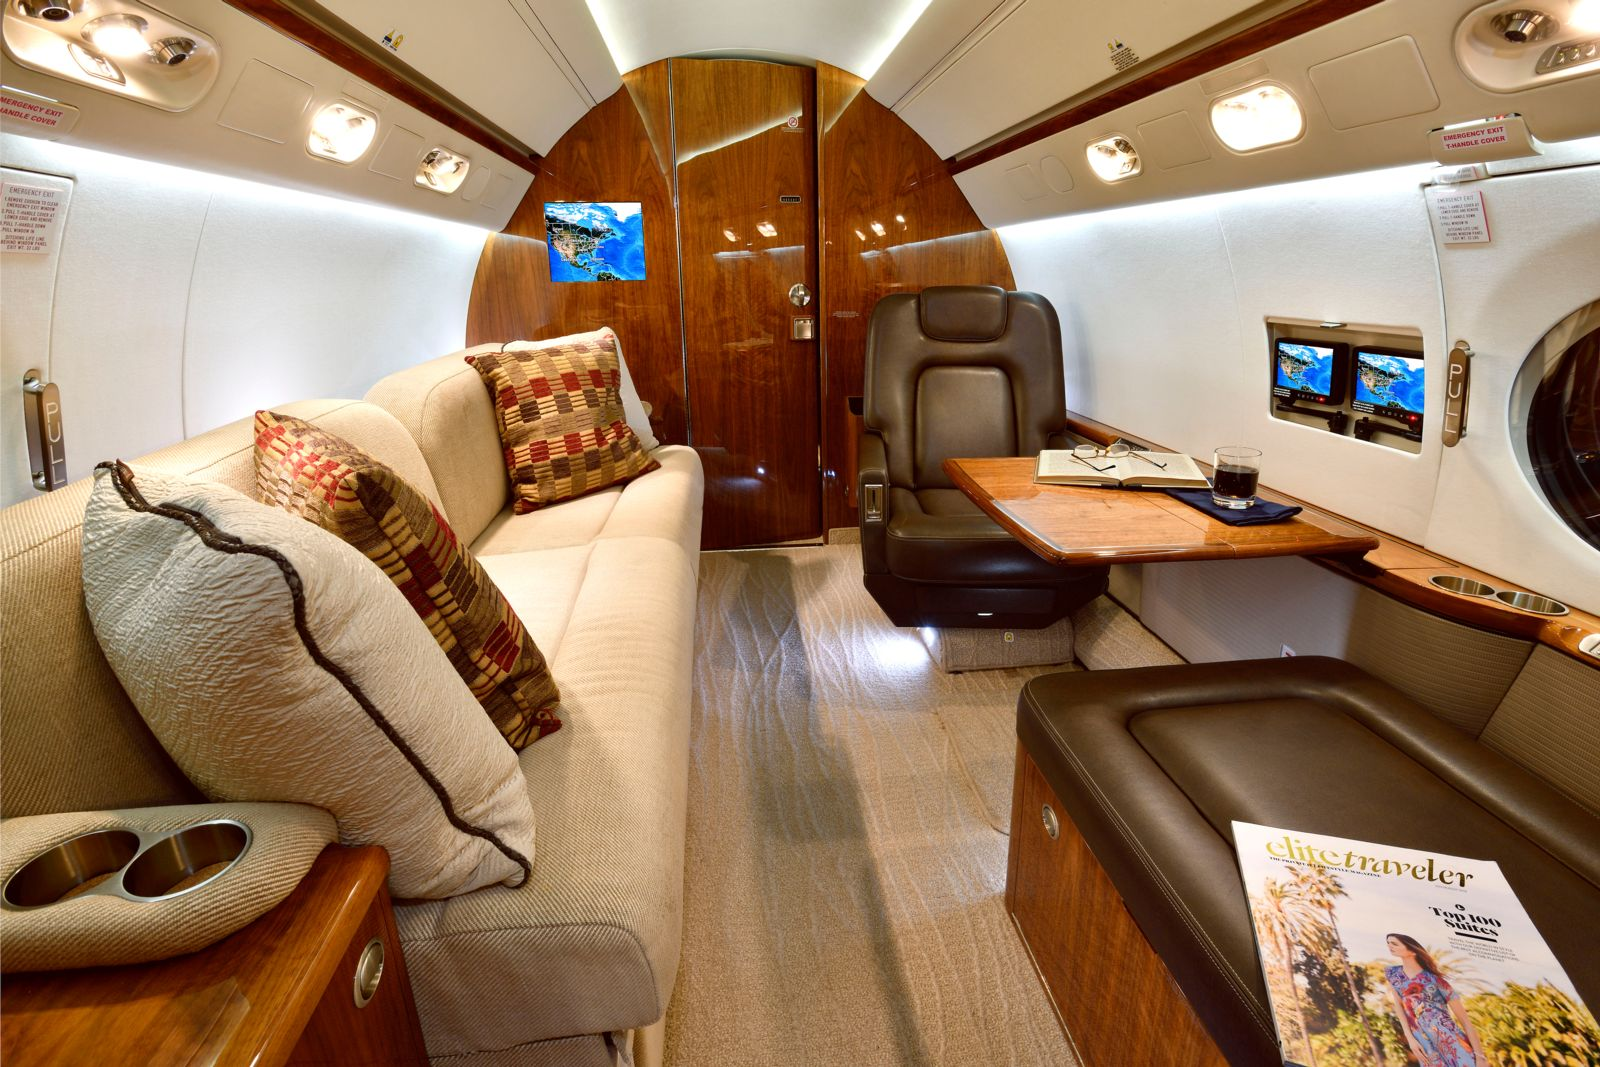 Gulfstream G550  S/N 5211 for sale | gallery image: /userfiles/images/G550_SN_5211/int10d_300.jpg